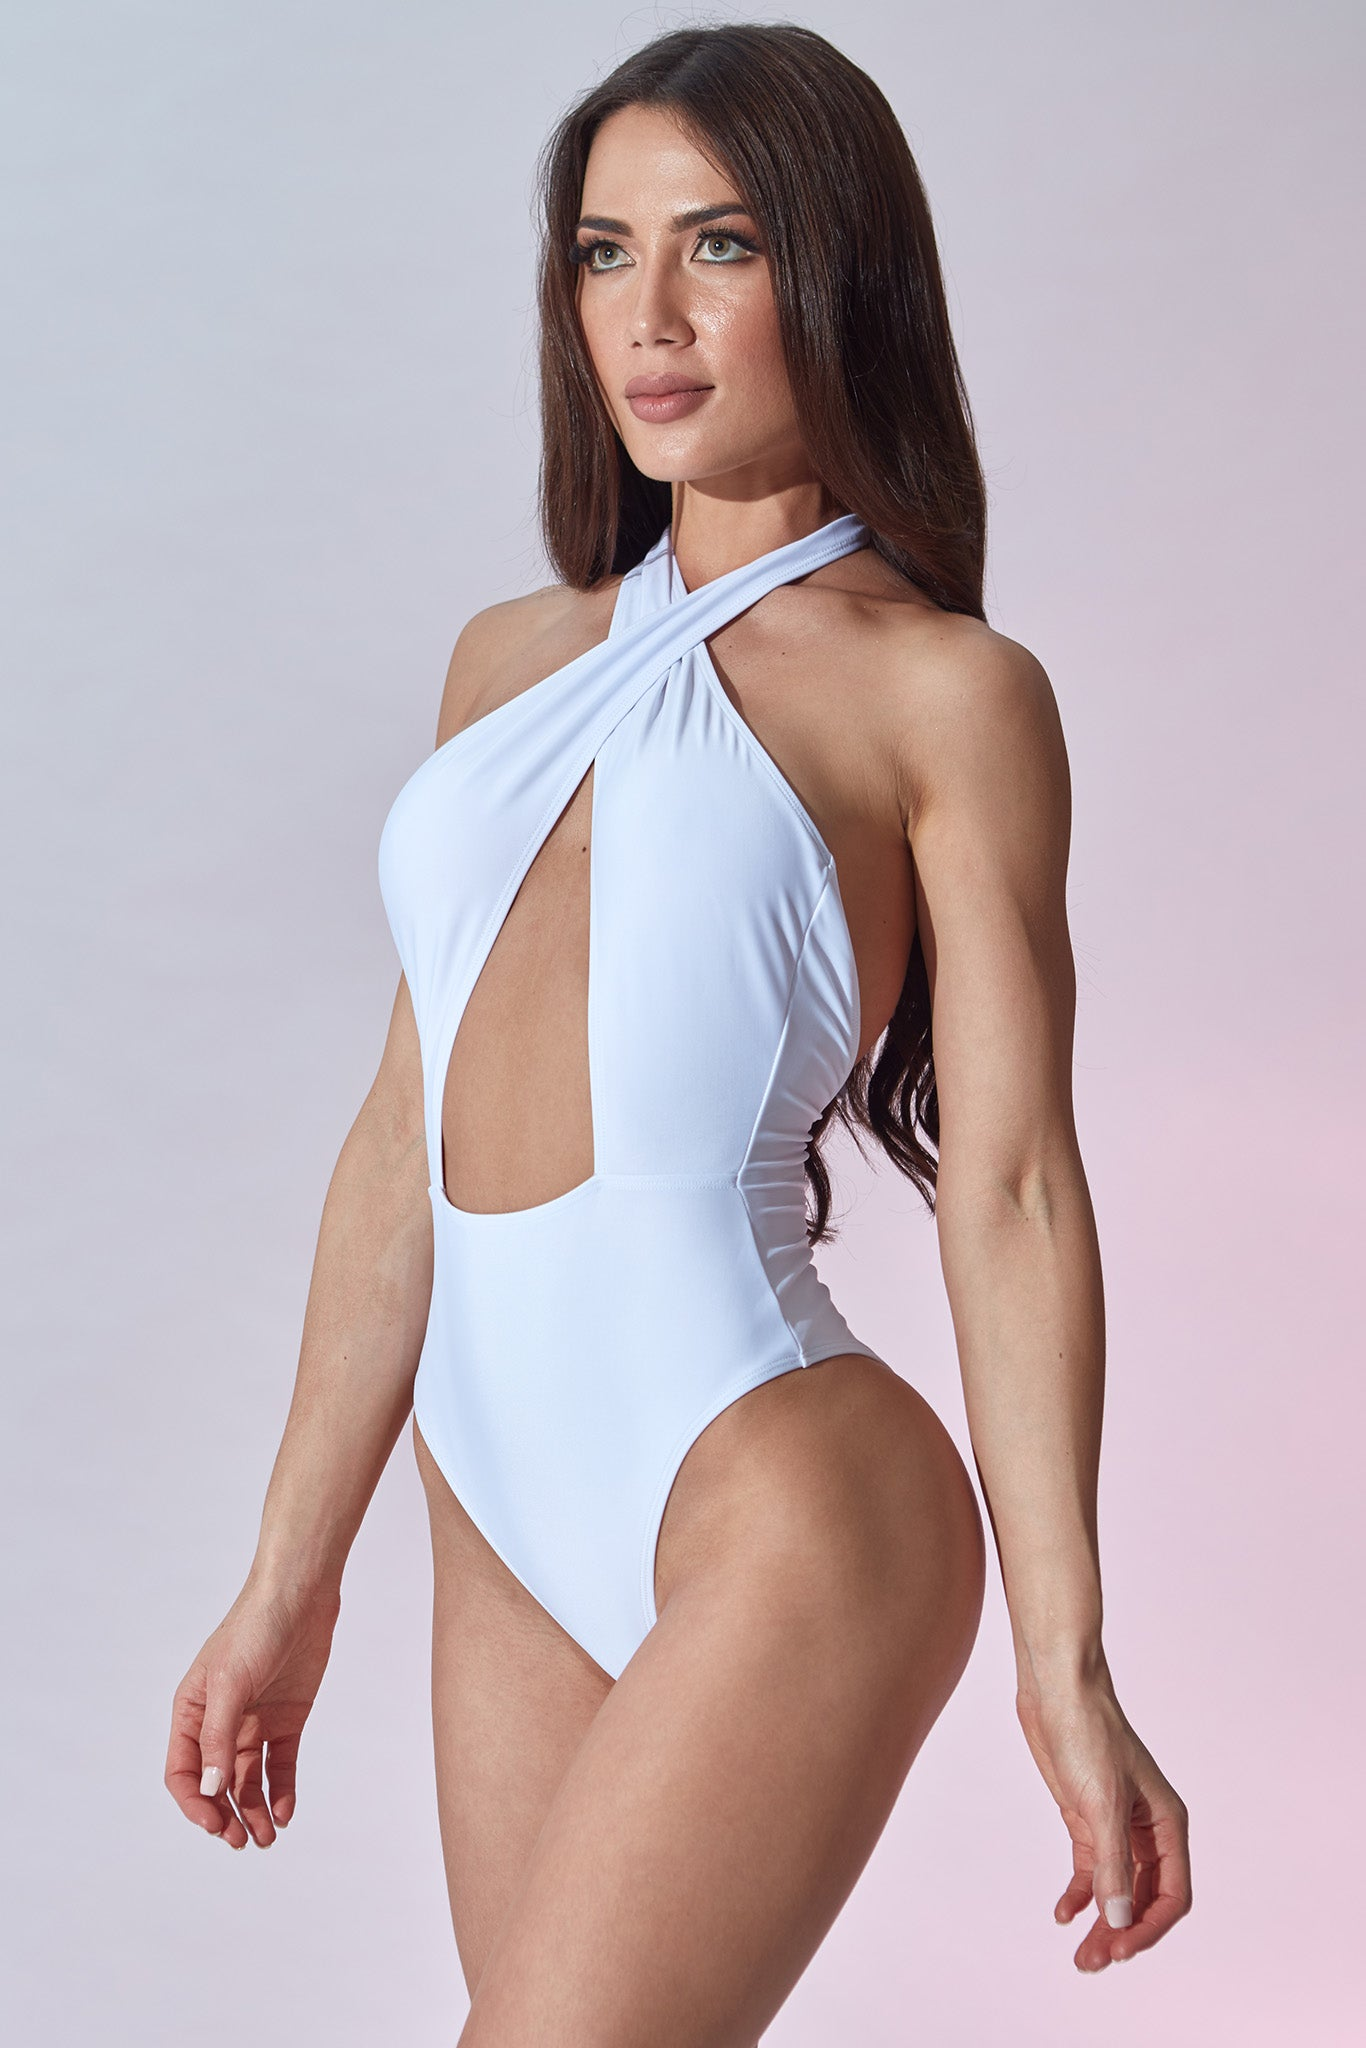 Setai Swimsuit - White - Side